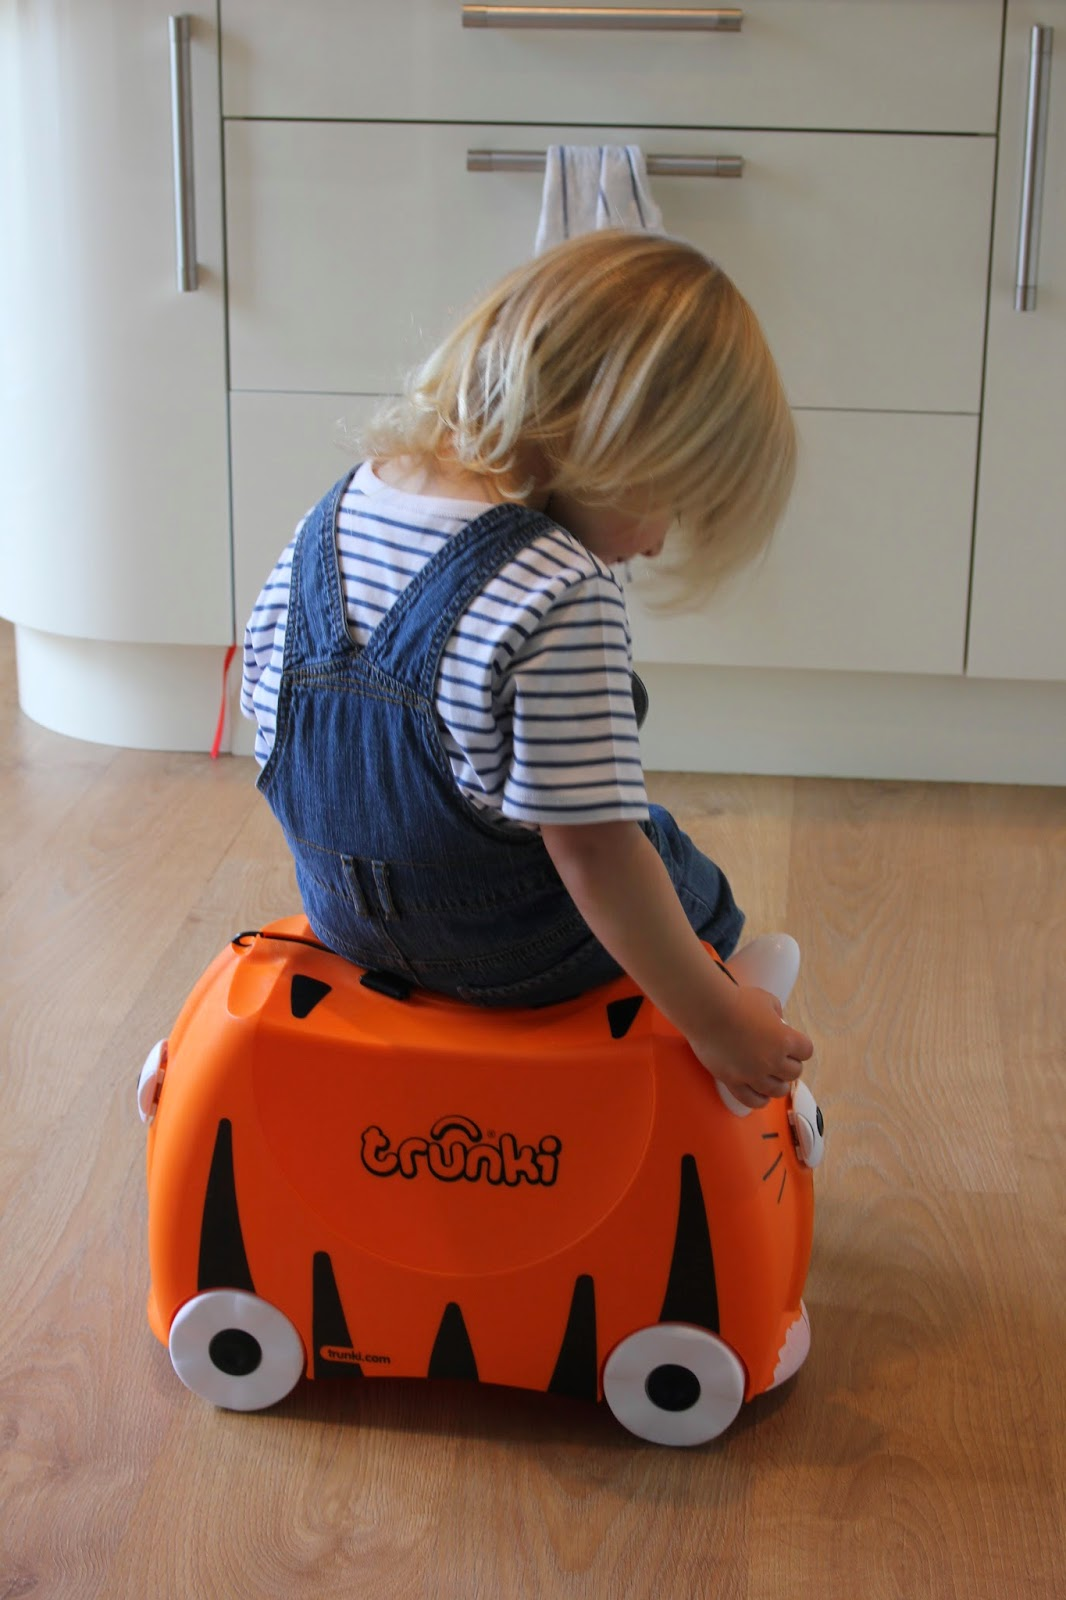 Trunki ride on